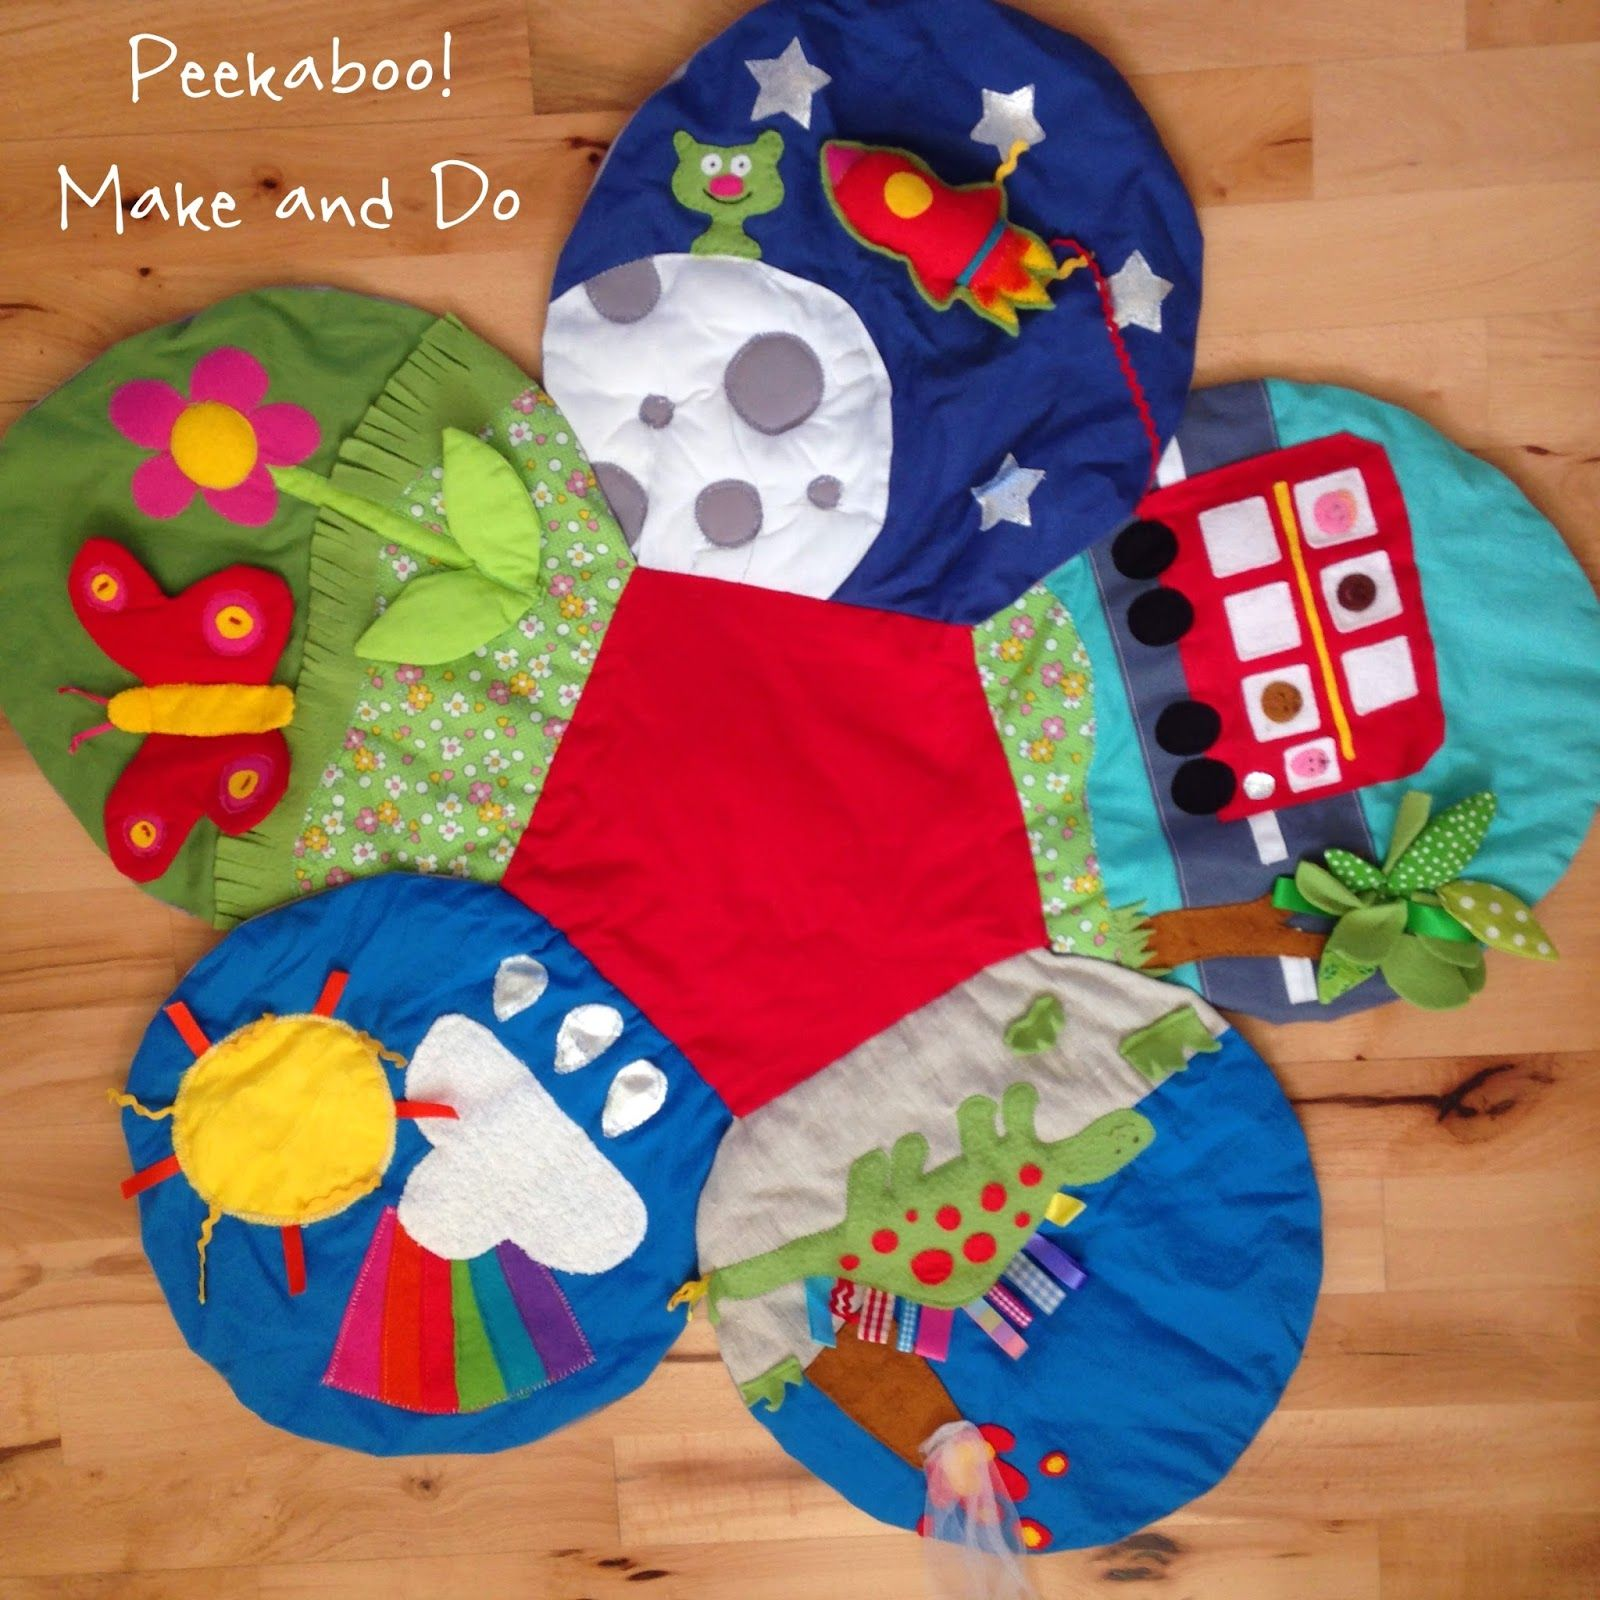 A baby sensoryplay matlots of detail colour textures